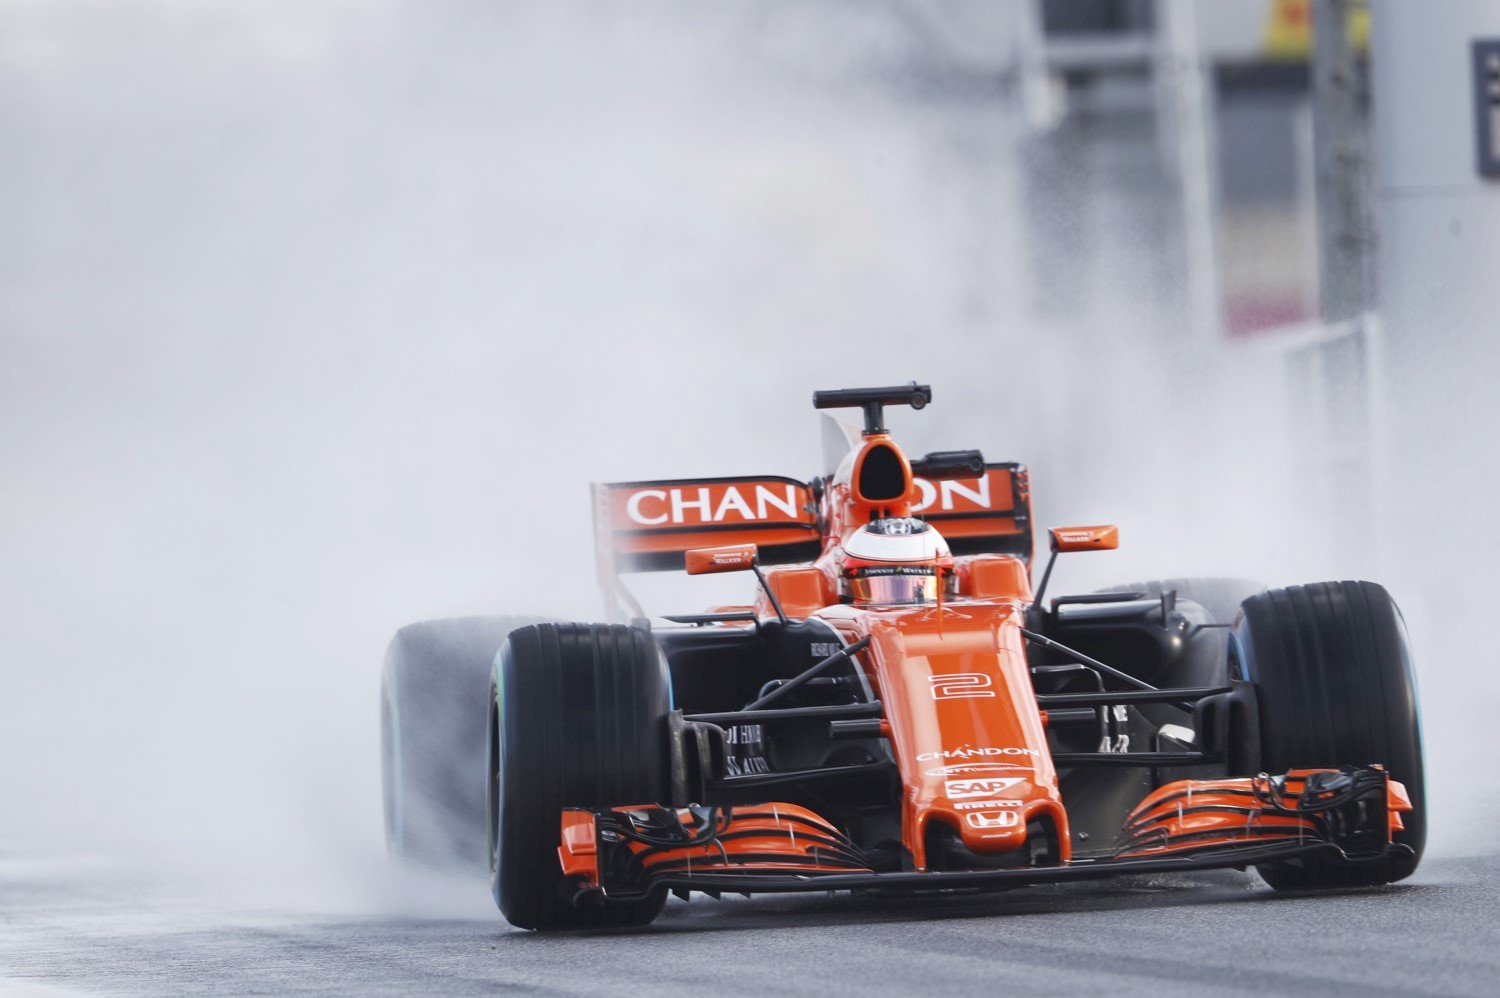 Vandoorne testing Pirelli's wet tires in Barcelona